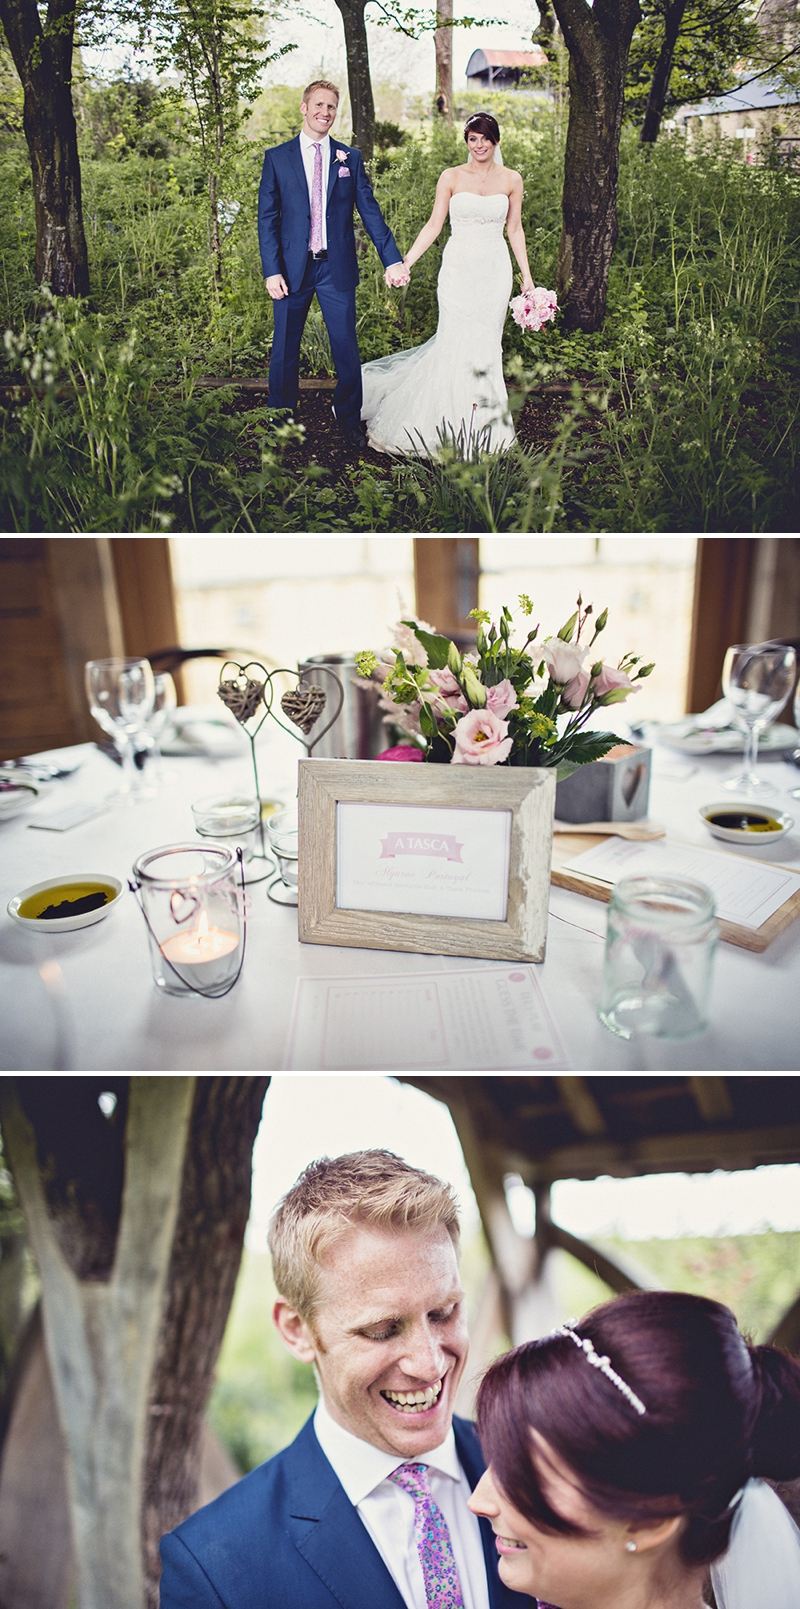 A pretty wedding at Cripps Barn by Anna Clarke photography with a lace pronovias dress_0312